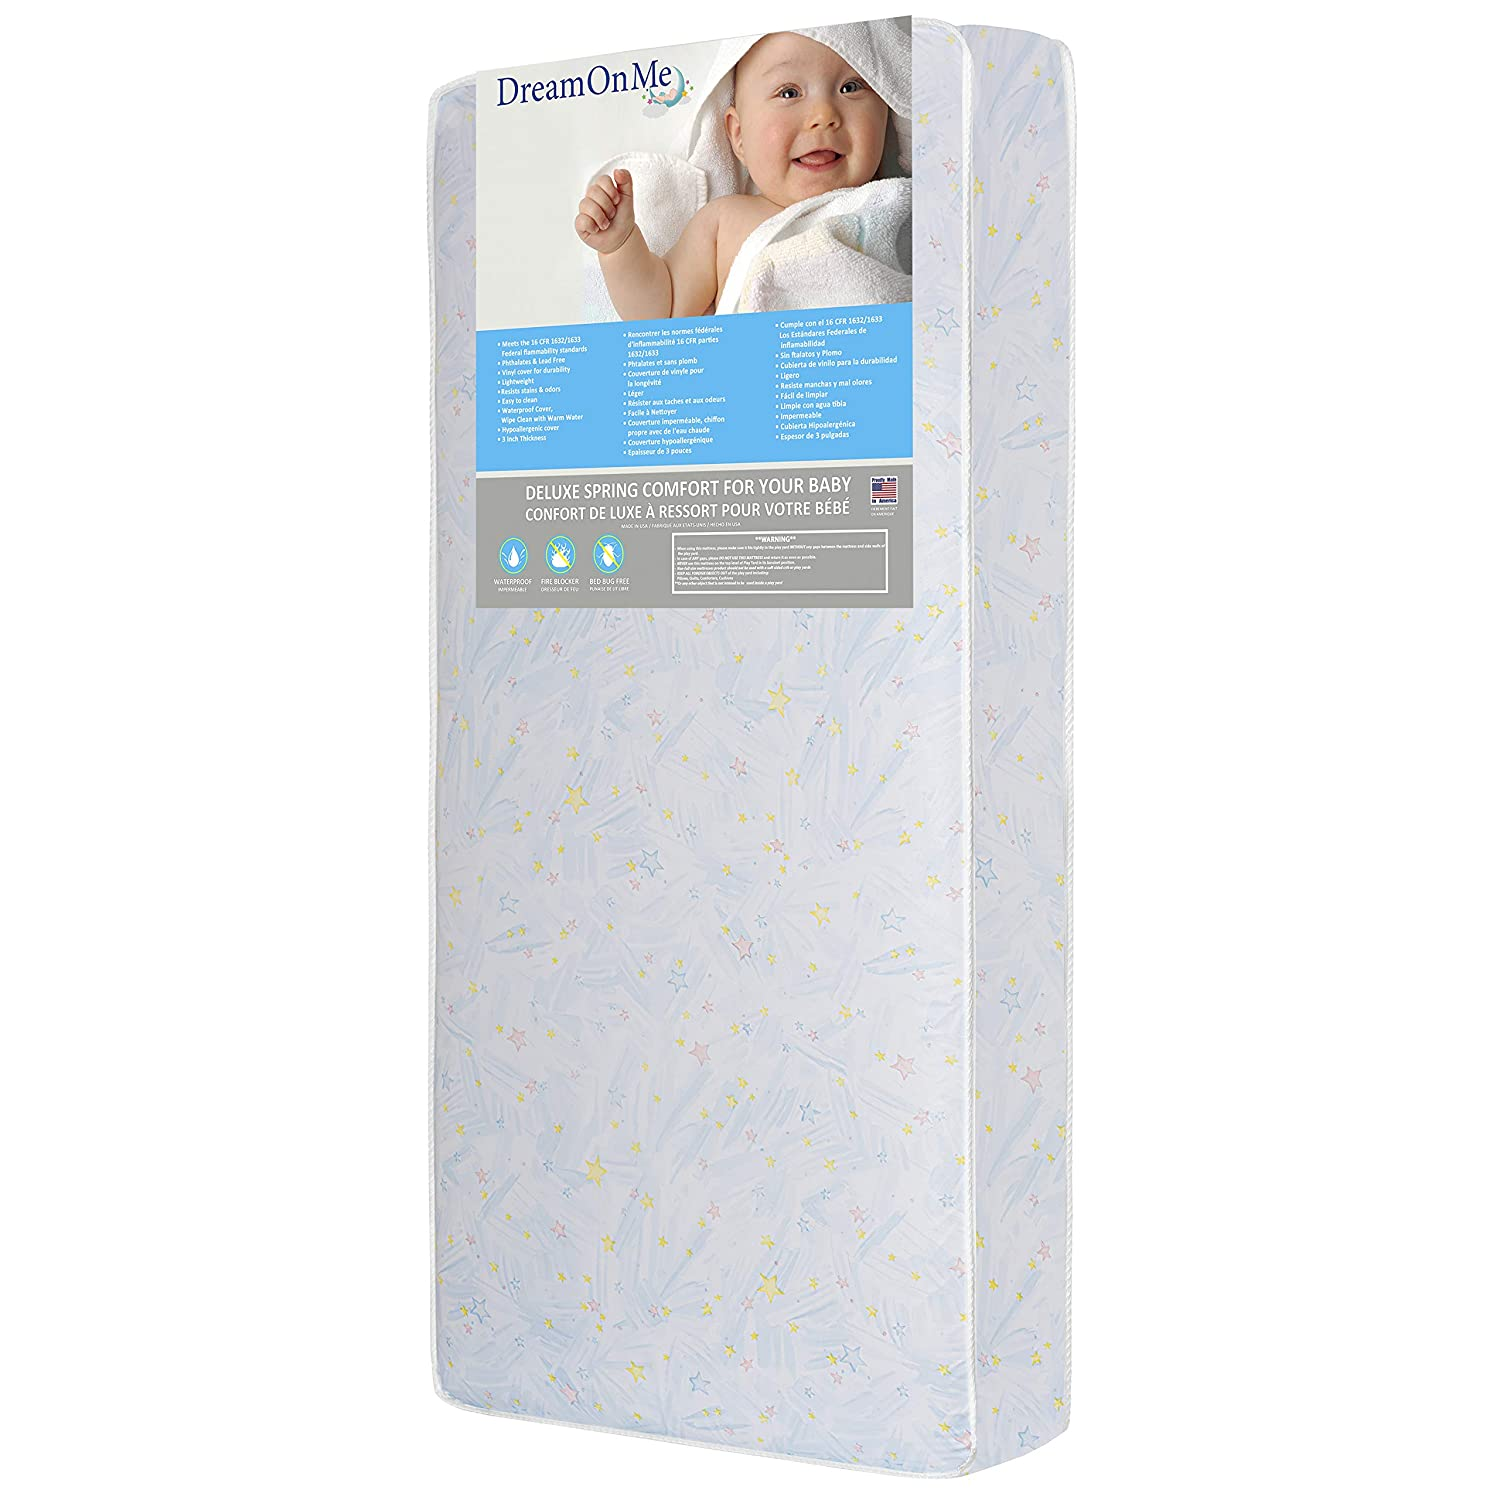 Dream On Me Crib and Toddler, 180 Coil Mattress, Star Bright 153-180